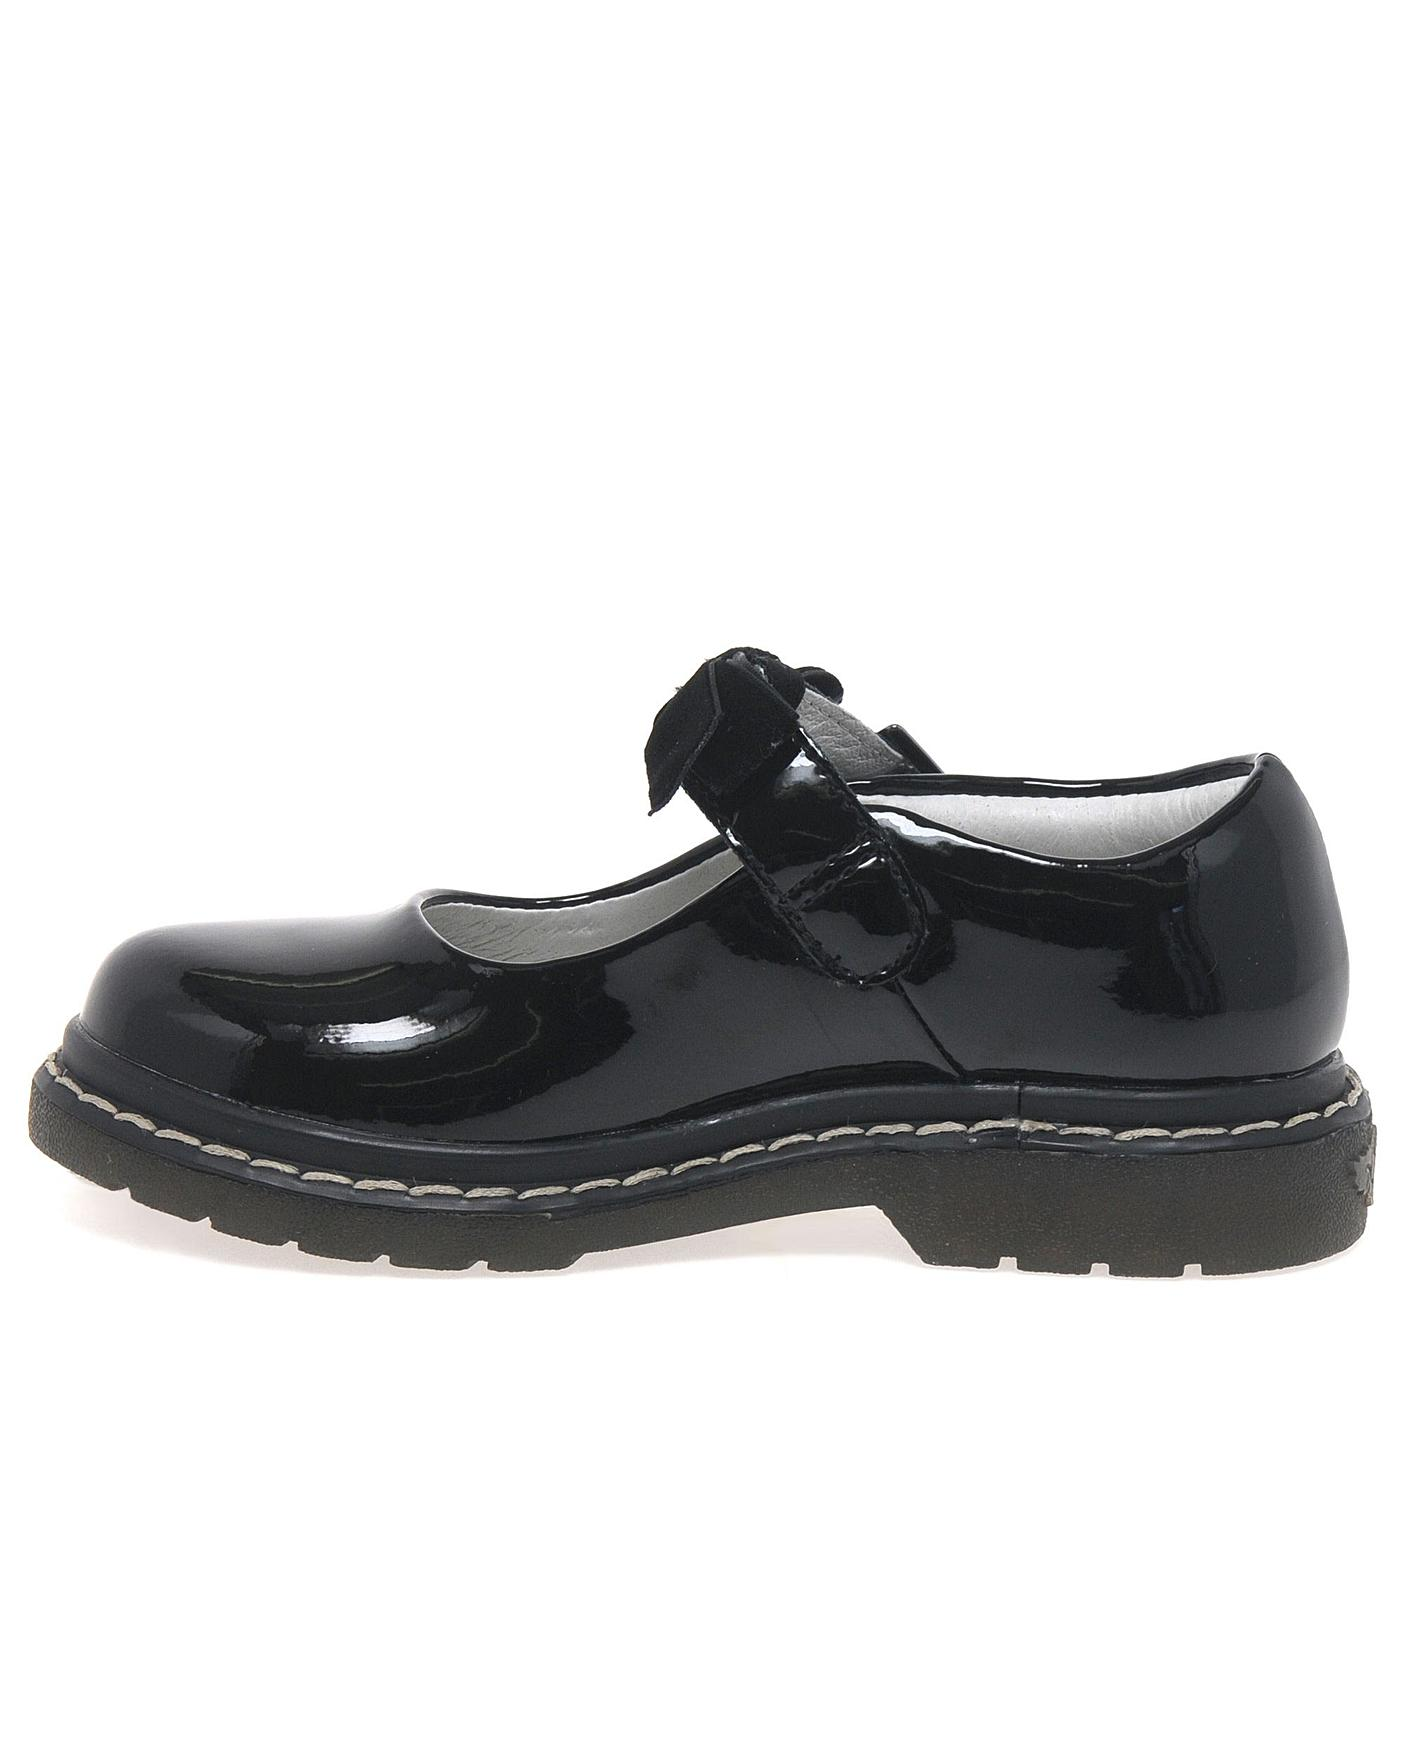 06a6b8a7e17 Lelli Kelly Frankie Girls Mary Janes. Now £49.90. Colour. Black Patent